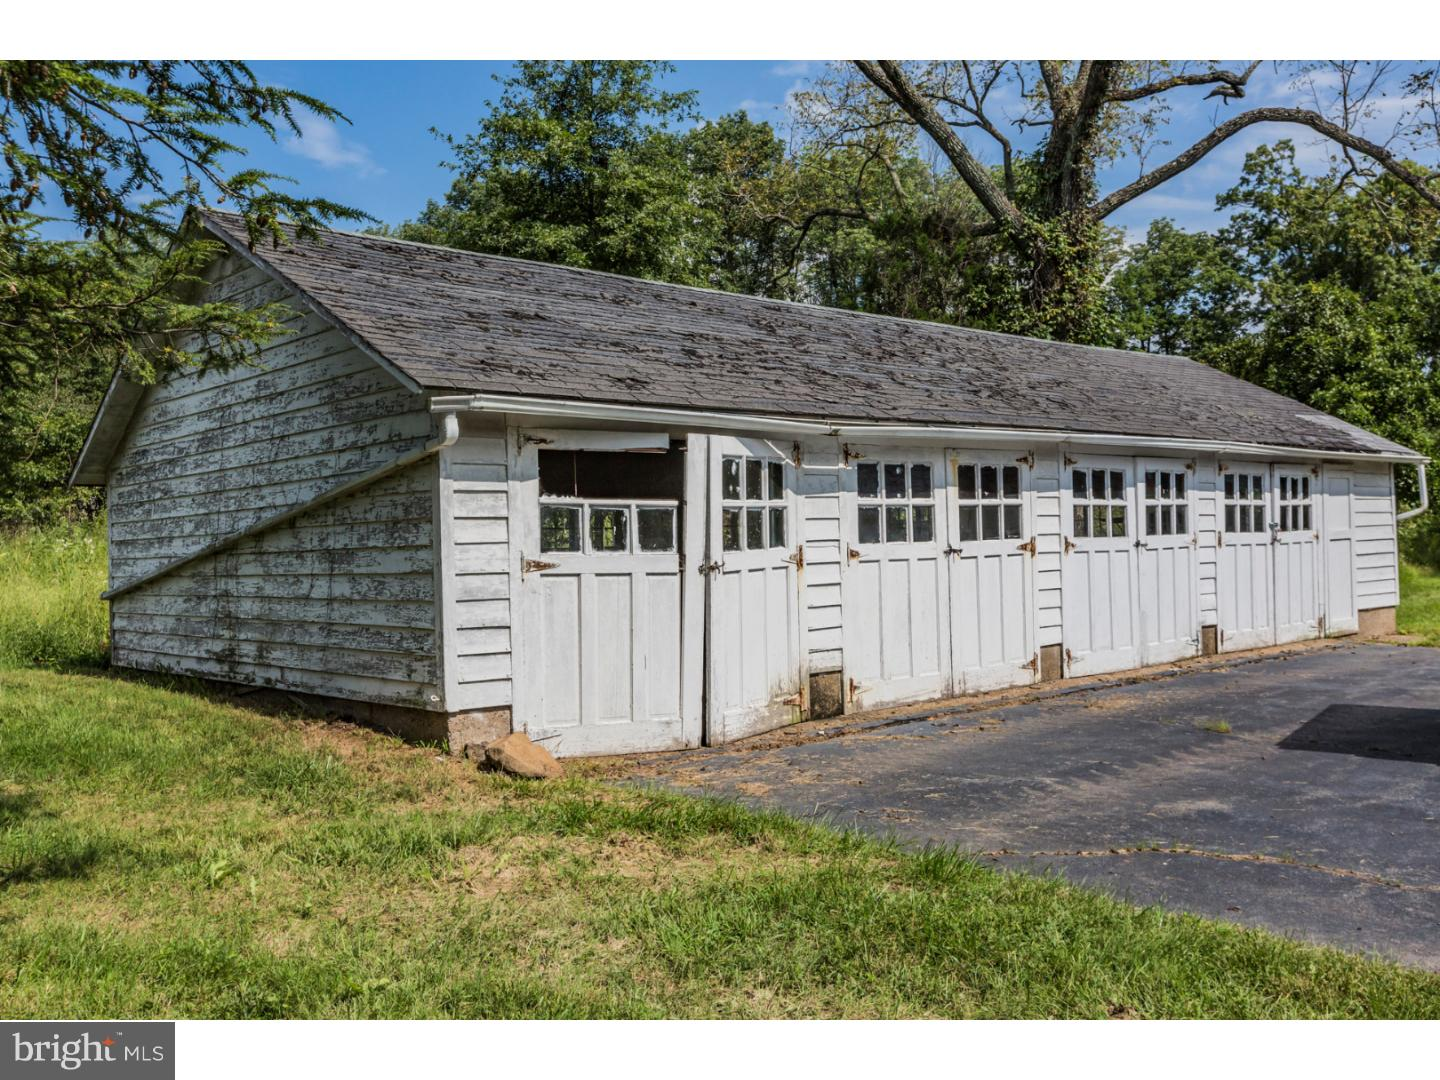 Property for Sale at 171 PENNINGTON ROCKY HILL Road Hopewell, New Jersey 08525 United States